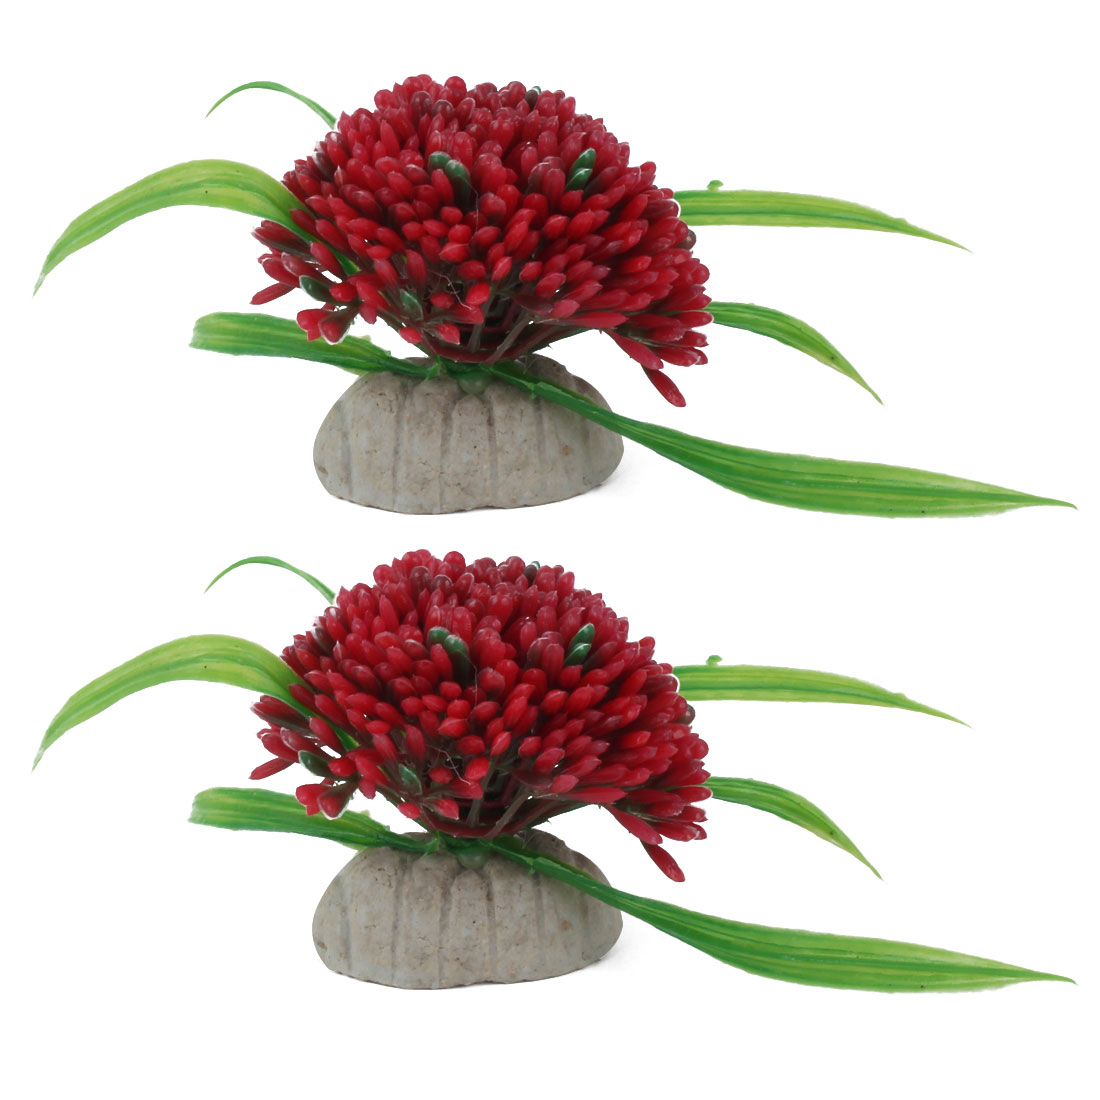 Aquarium Ceramic Base Artificial Plant Adornment Underwater Landscape Manmade Ornament Red 2pcs